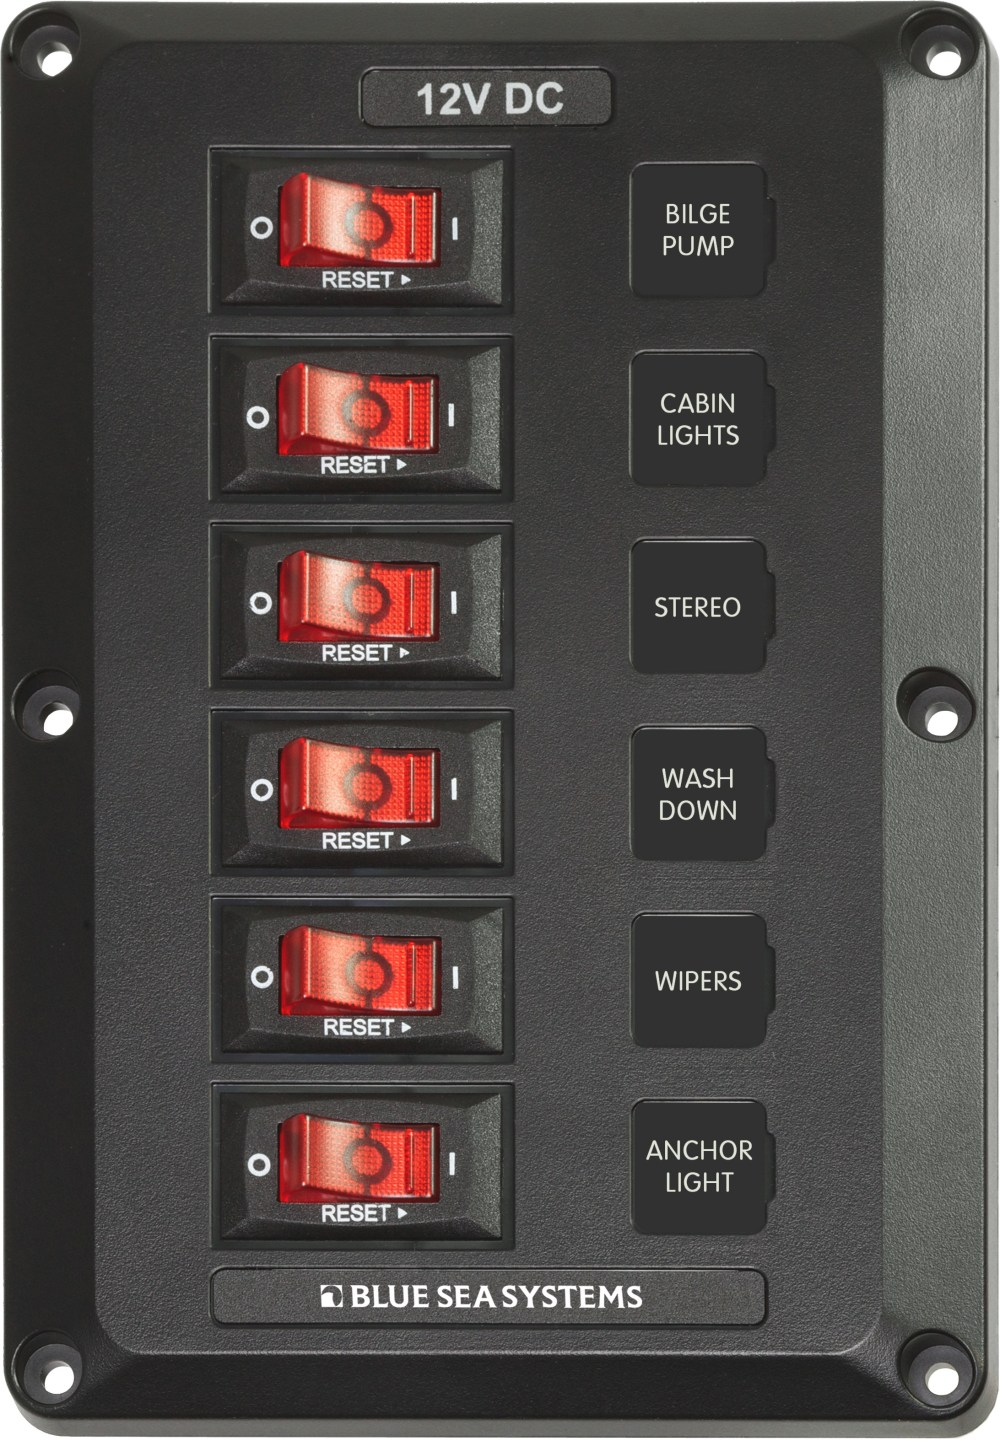 medium resolution of 6 position belowdeck circuit breaker panel blue sea systems blue sea fuse block marine switch fuse box